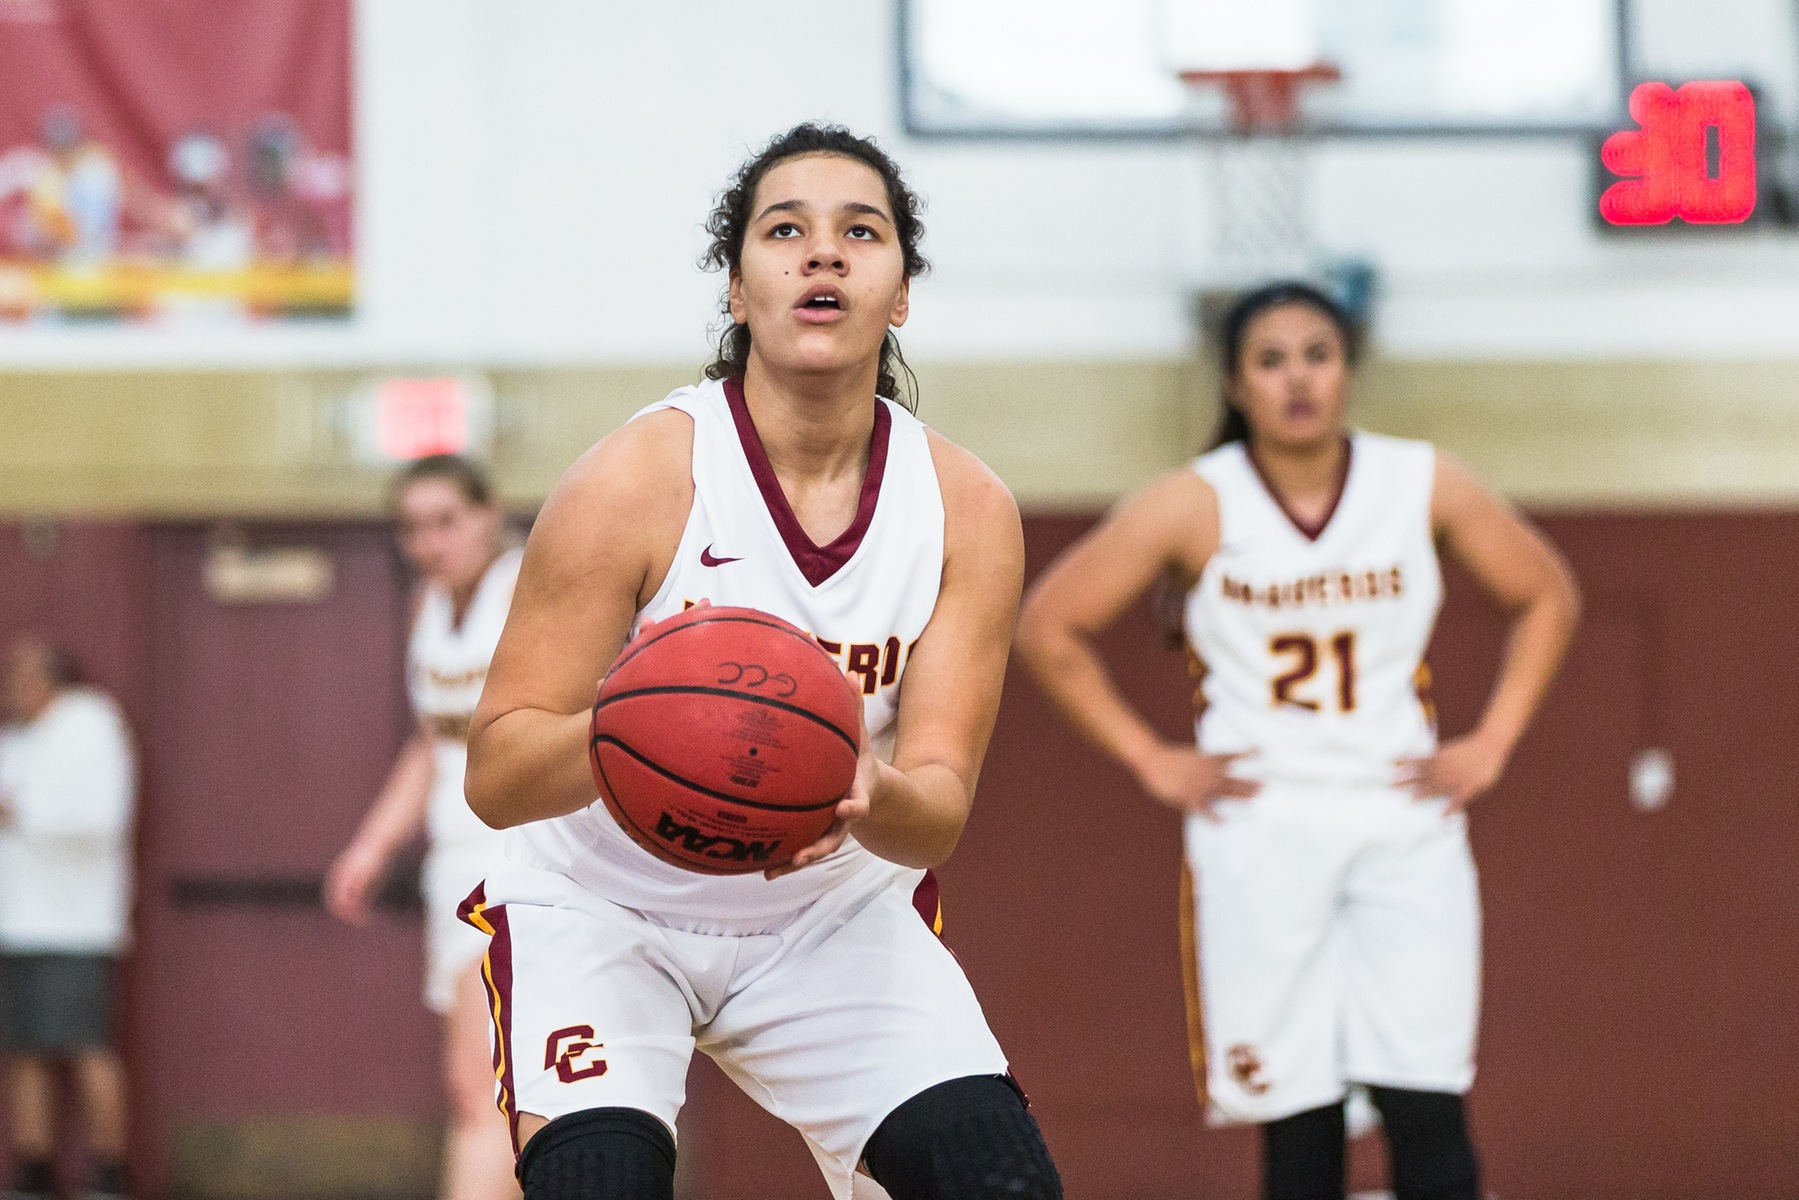 Jankuvloski leads Lady Vaqs to win over Oxnard with 18 points